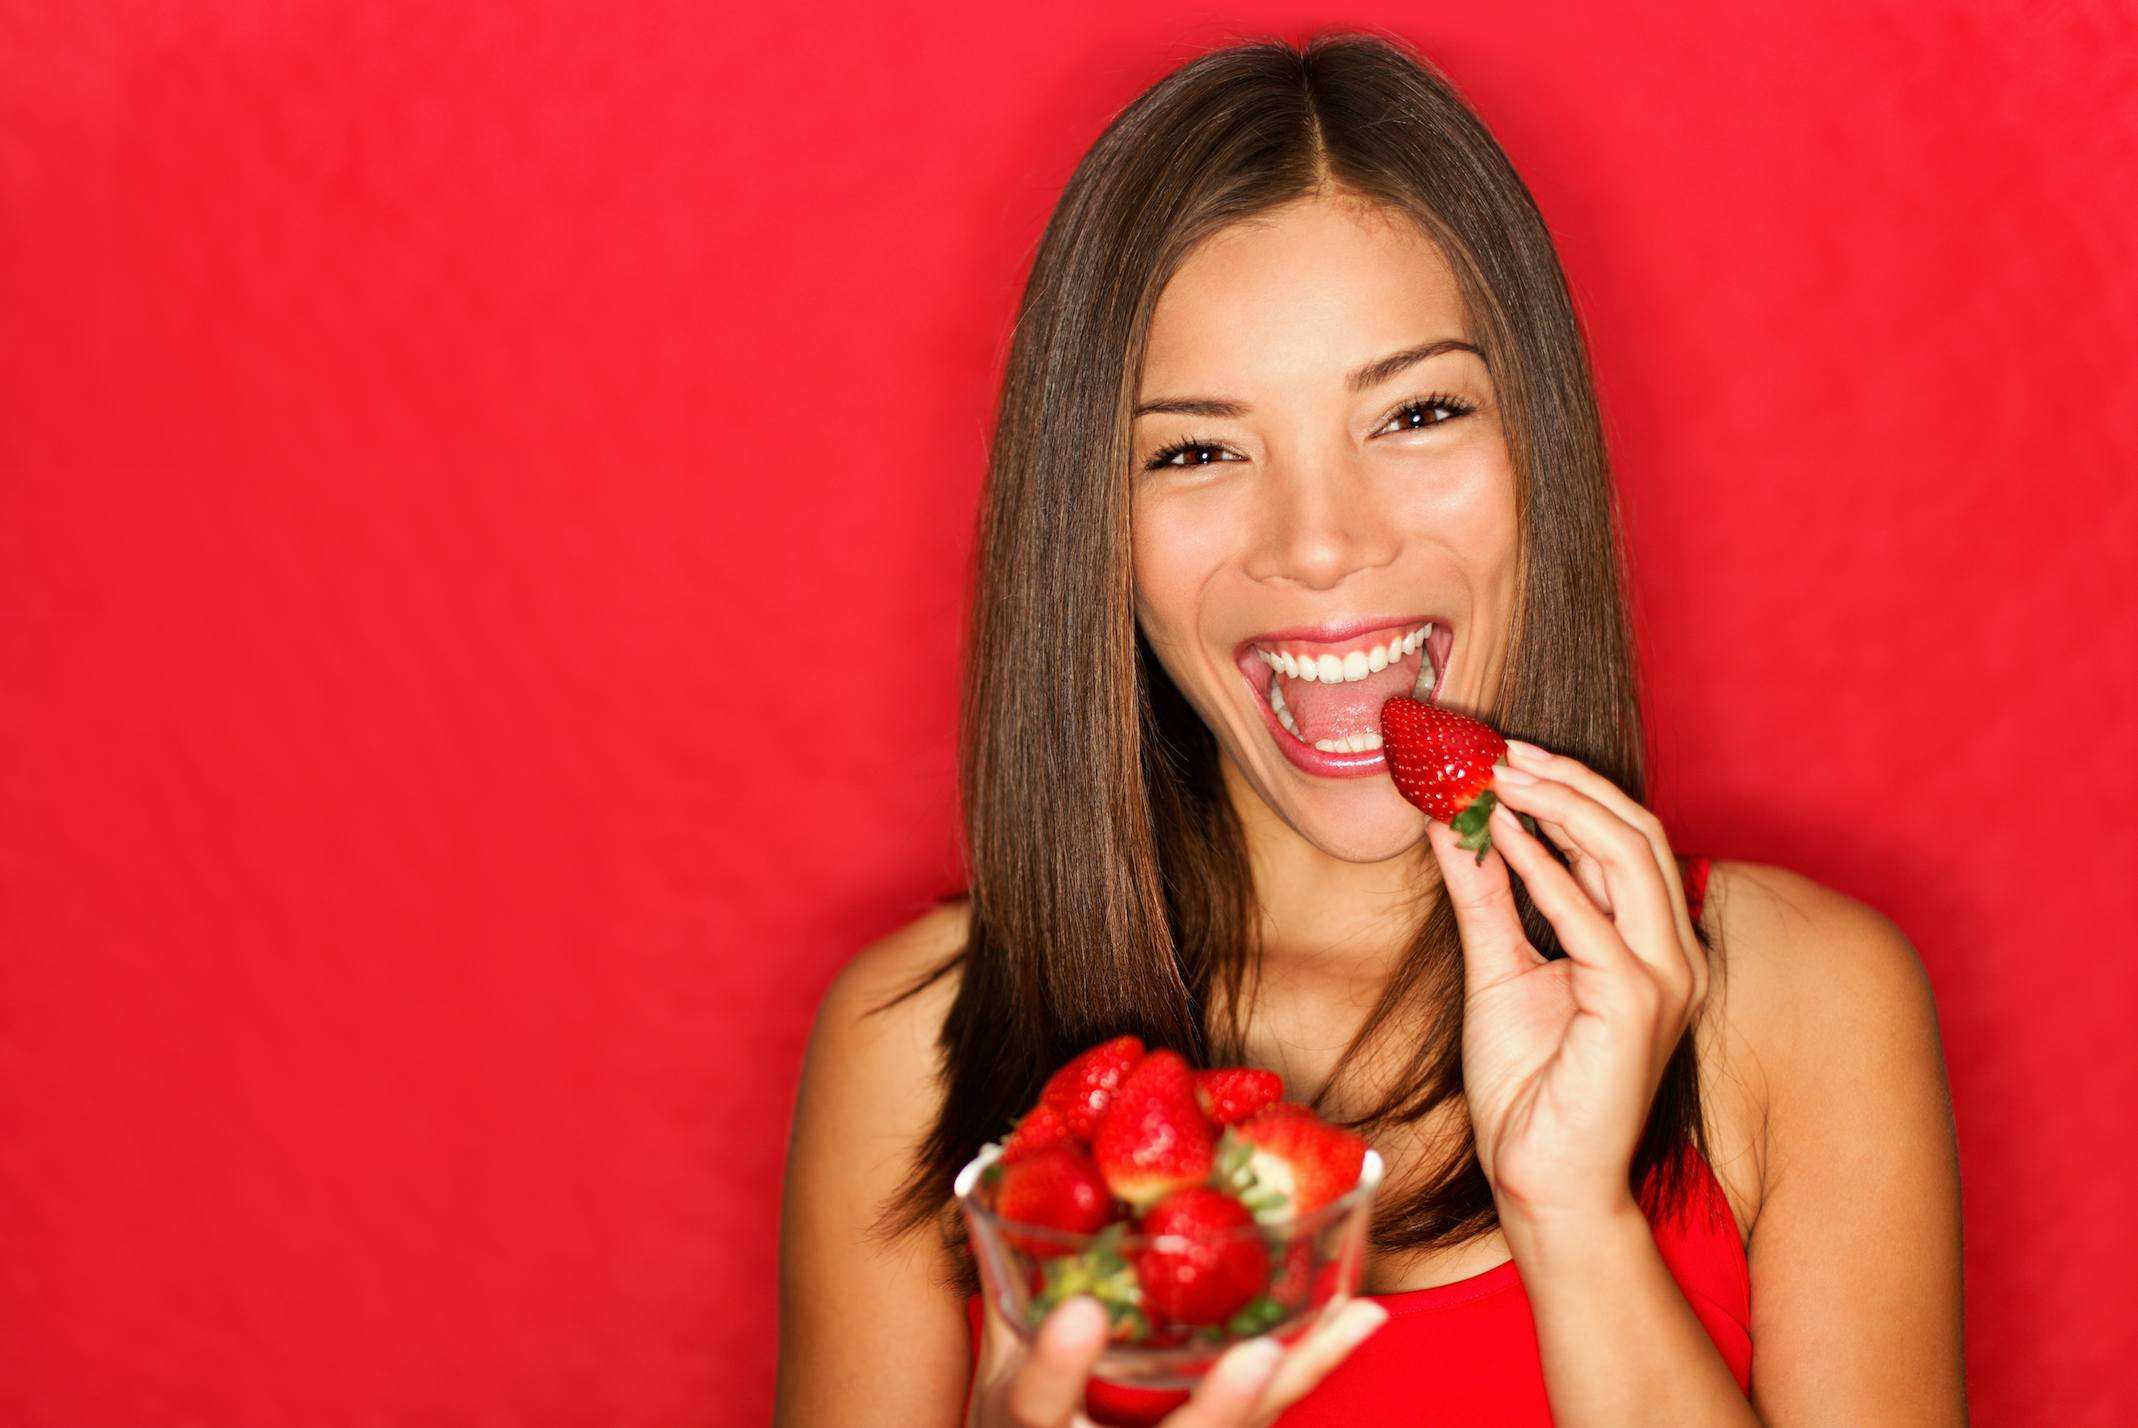 A woman eating strawberries